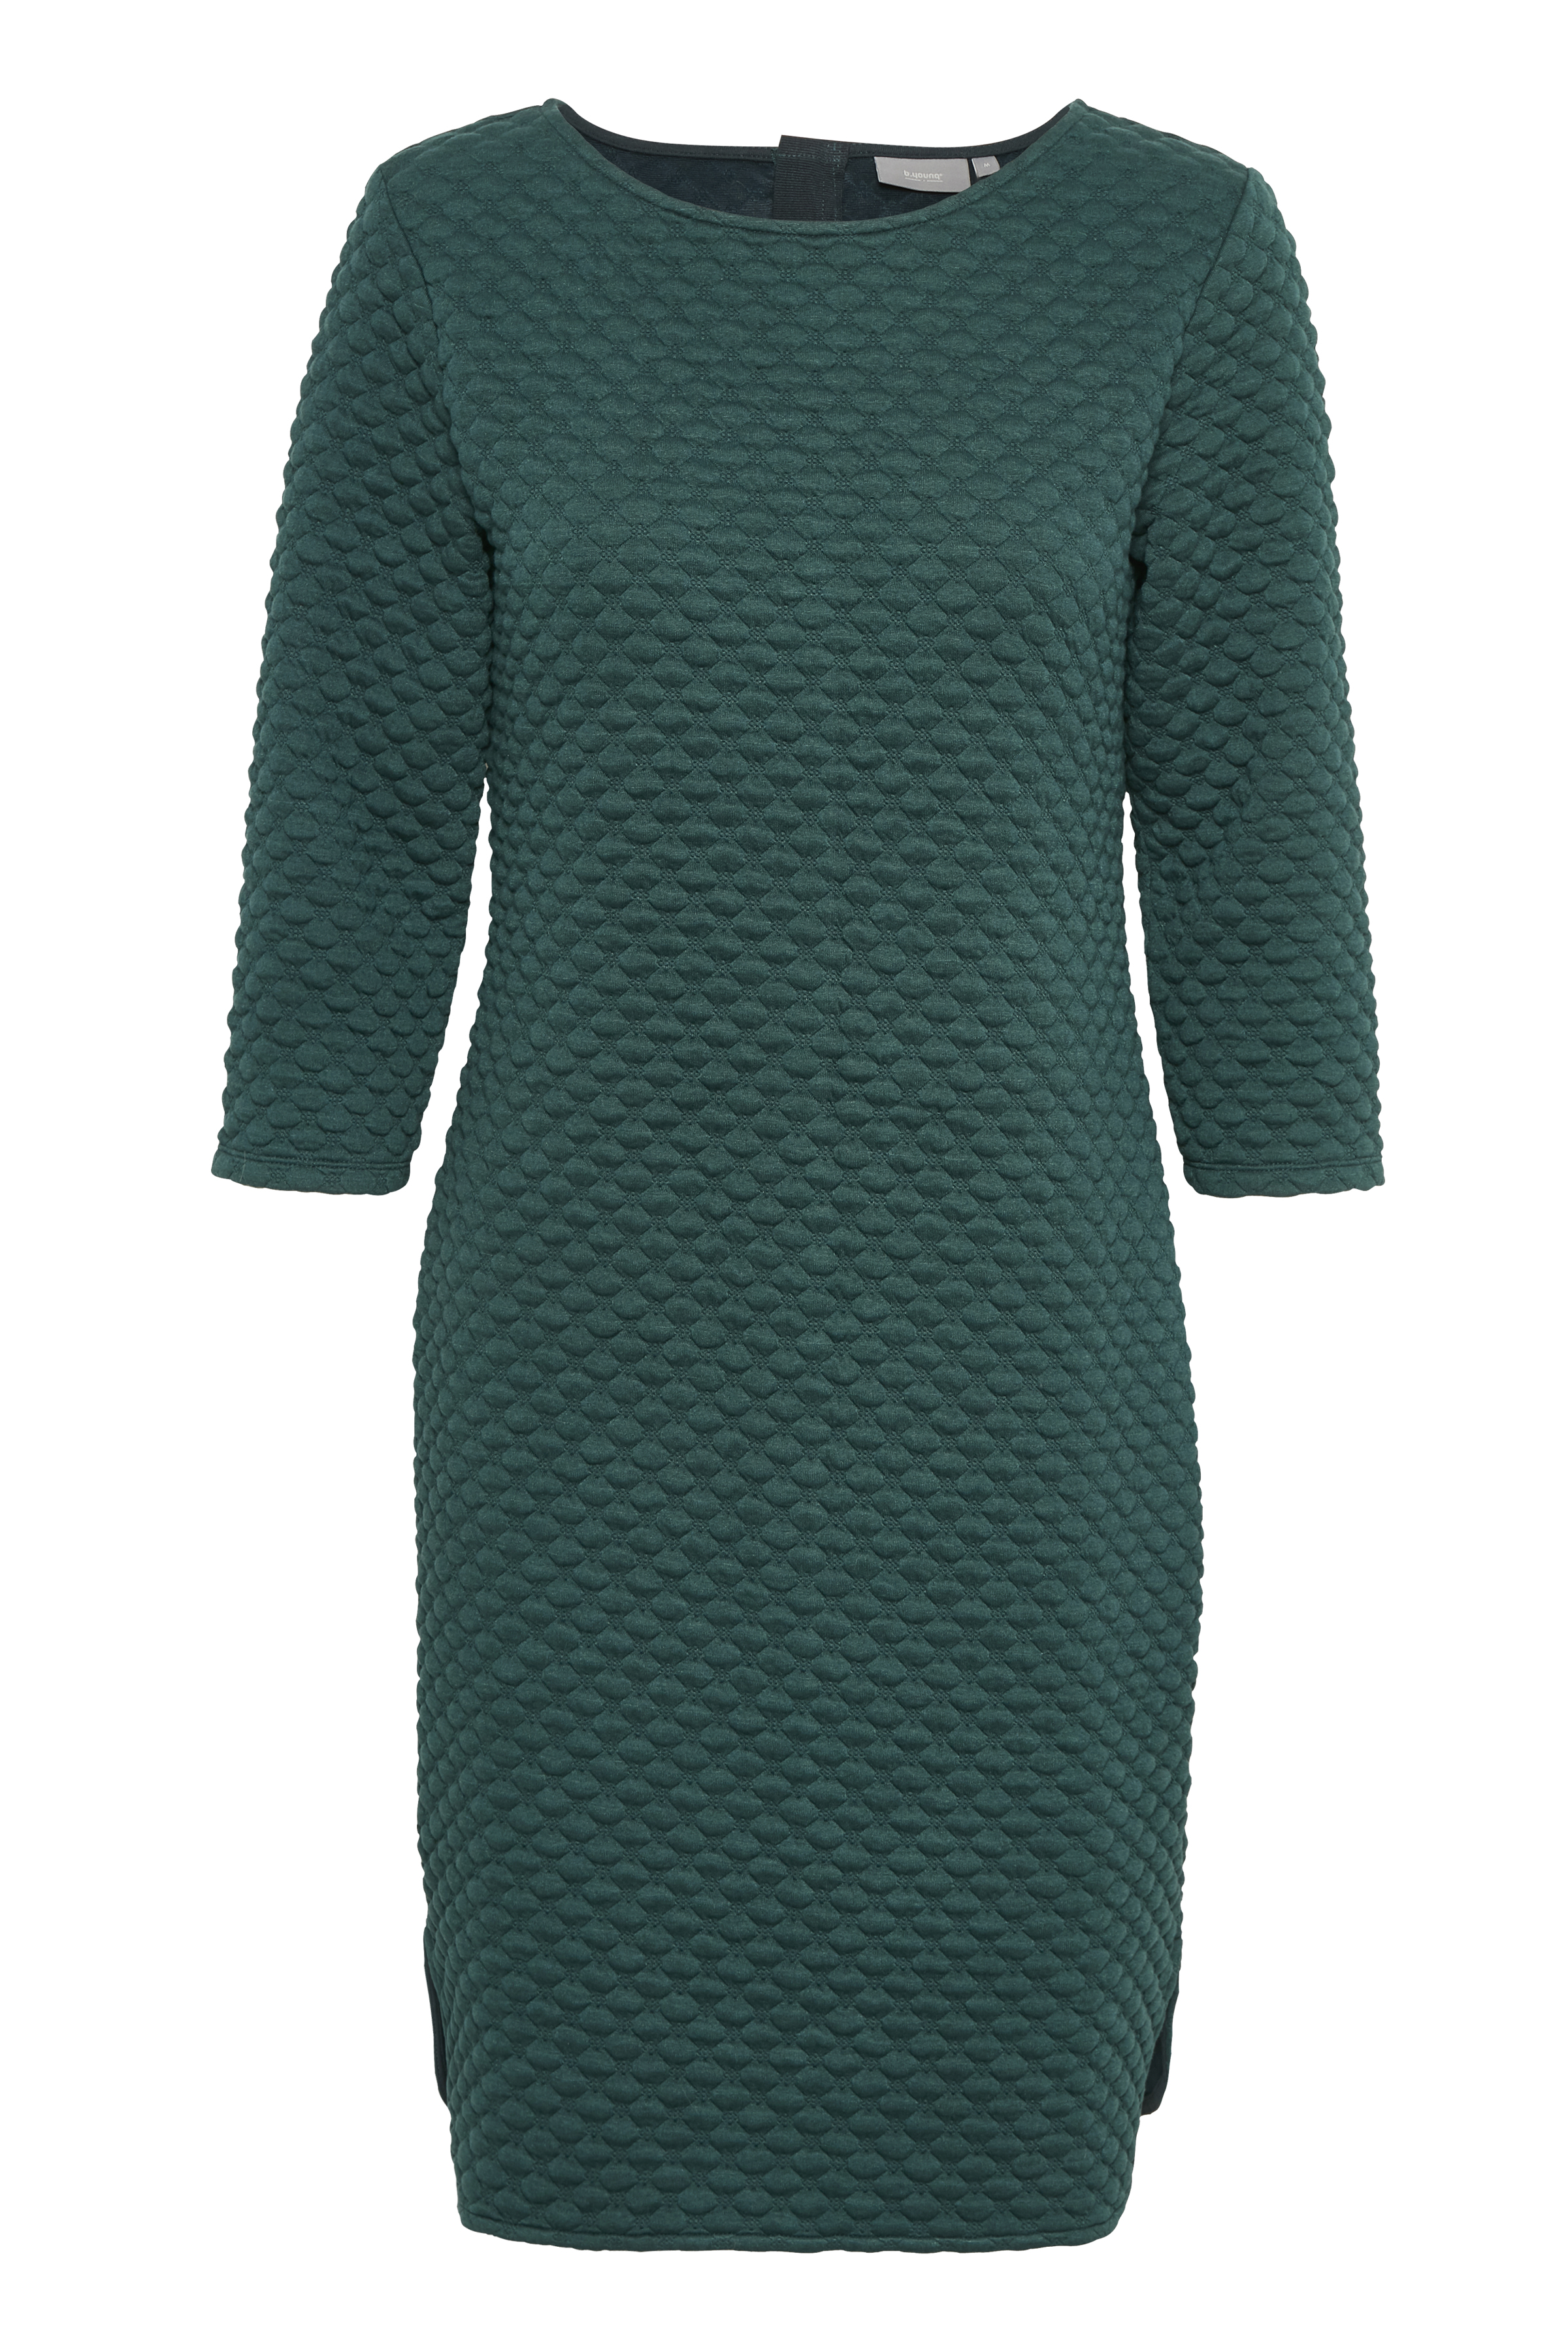 Majestic Green Jerseykjole fra b.young – Køb Majestic Green Jerseykjole fra str. XS-XXL her